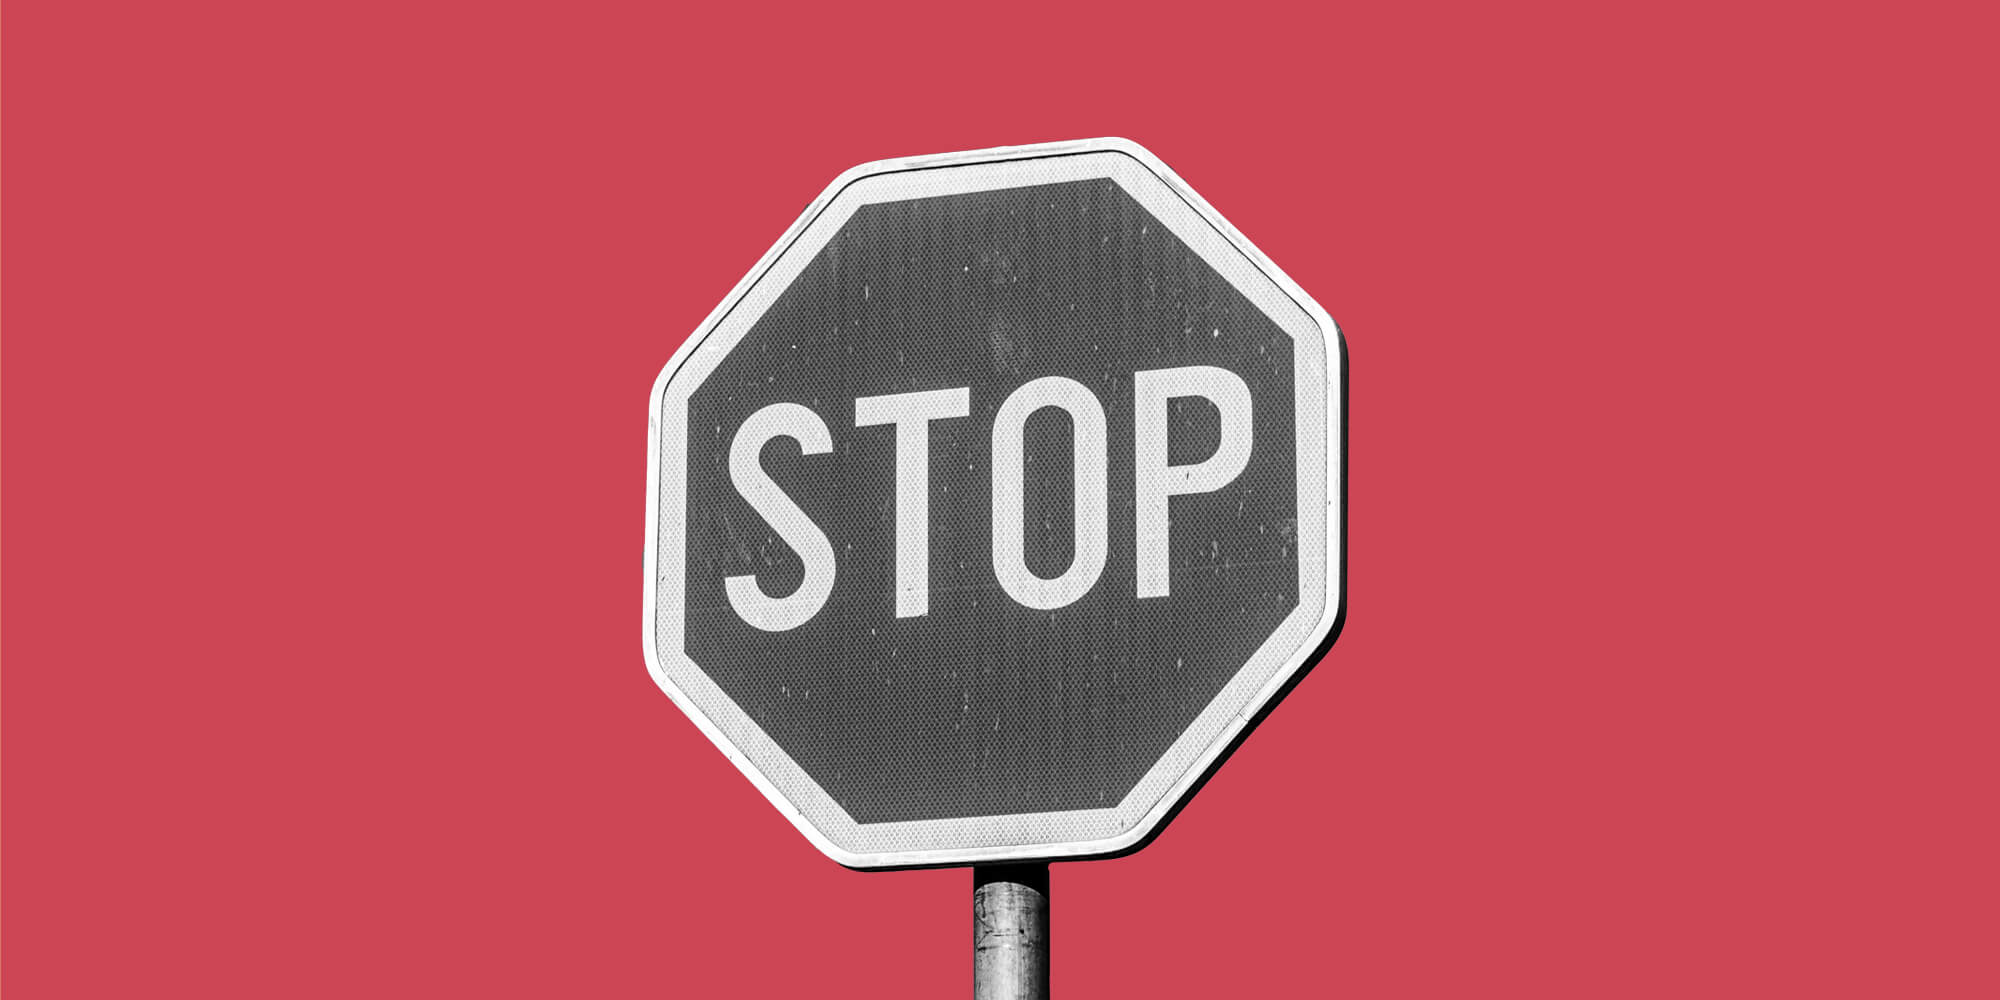 A grayscale STOP sign on a red background